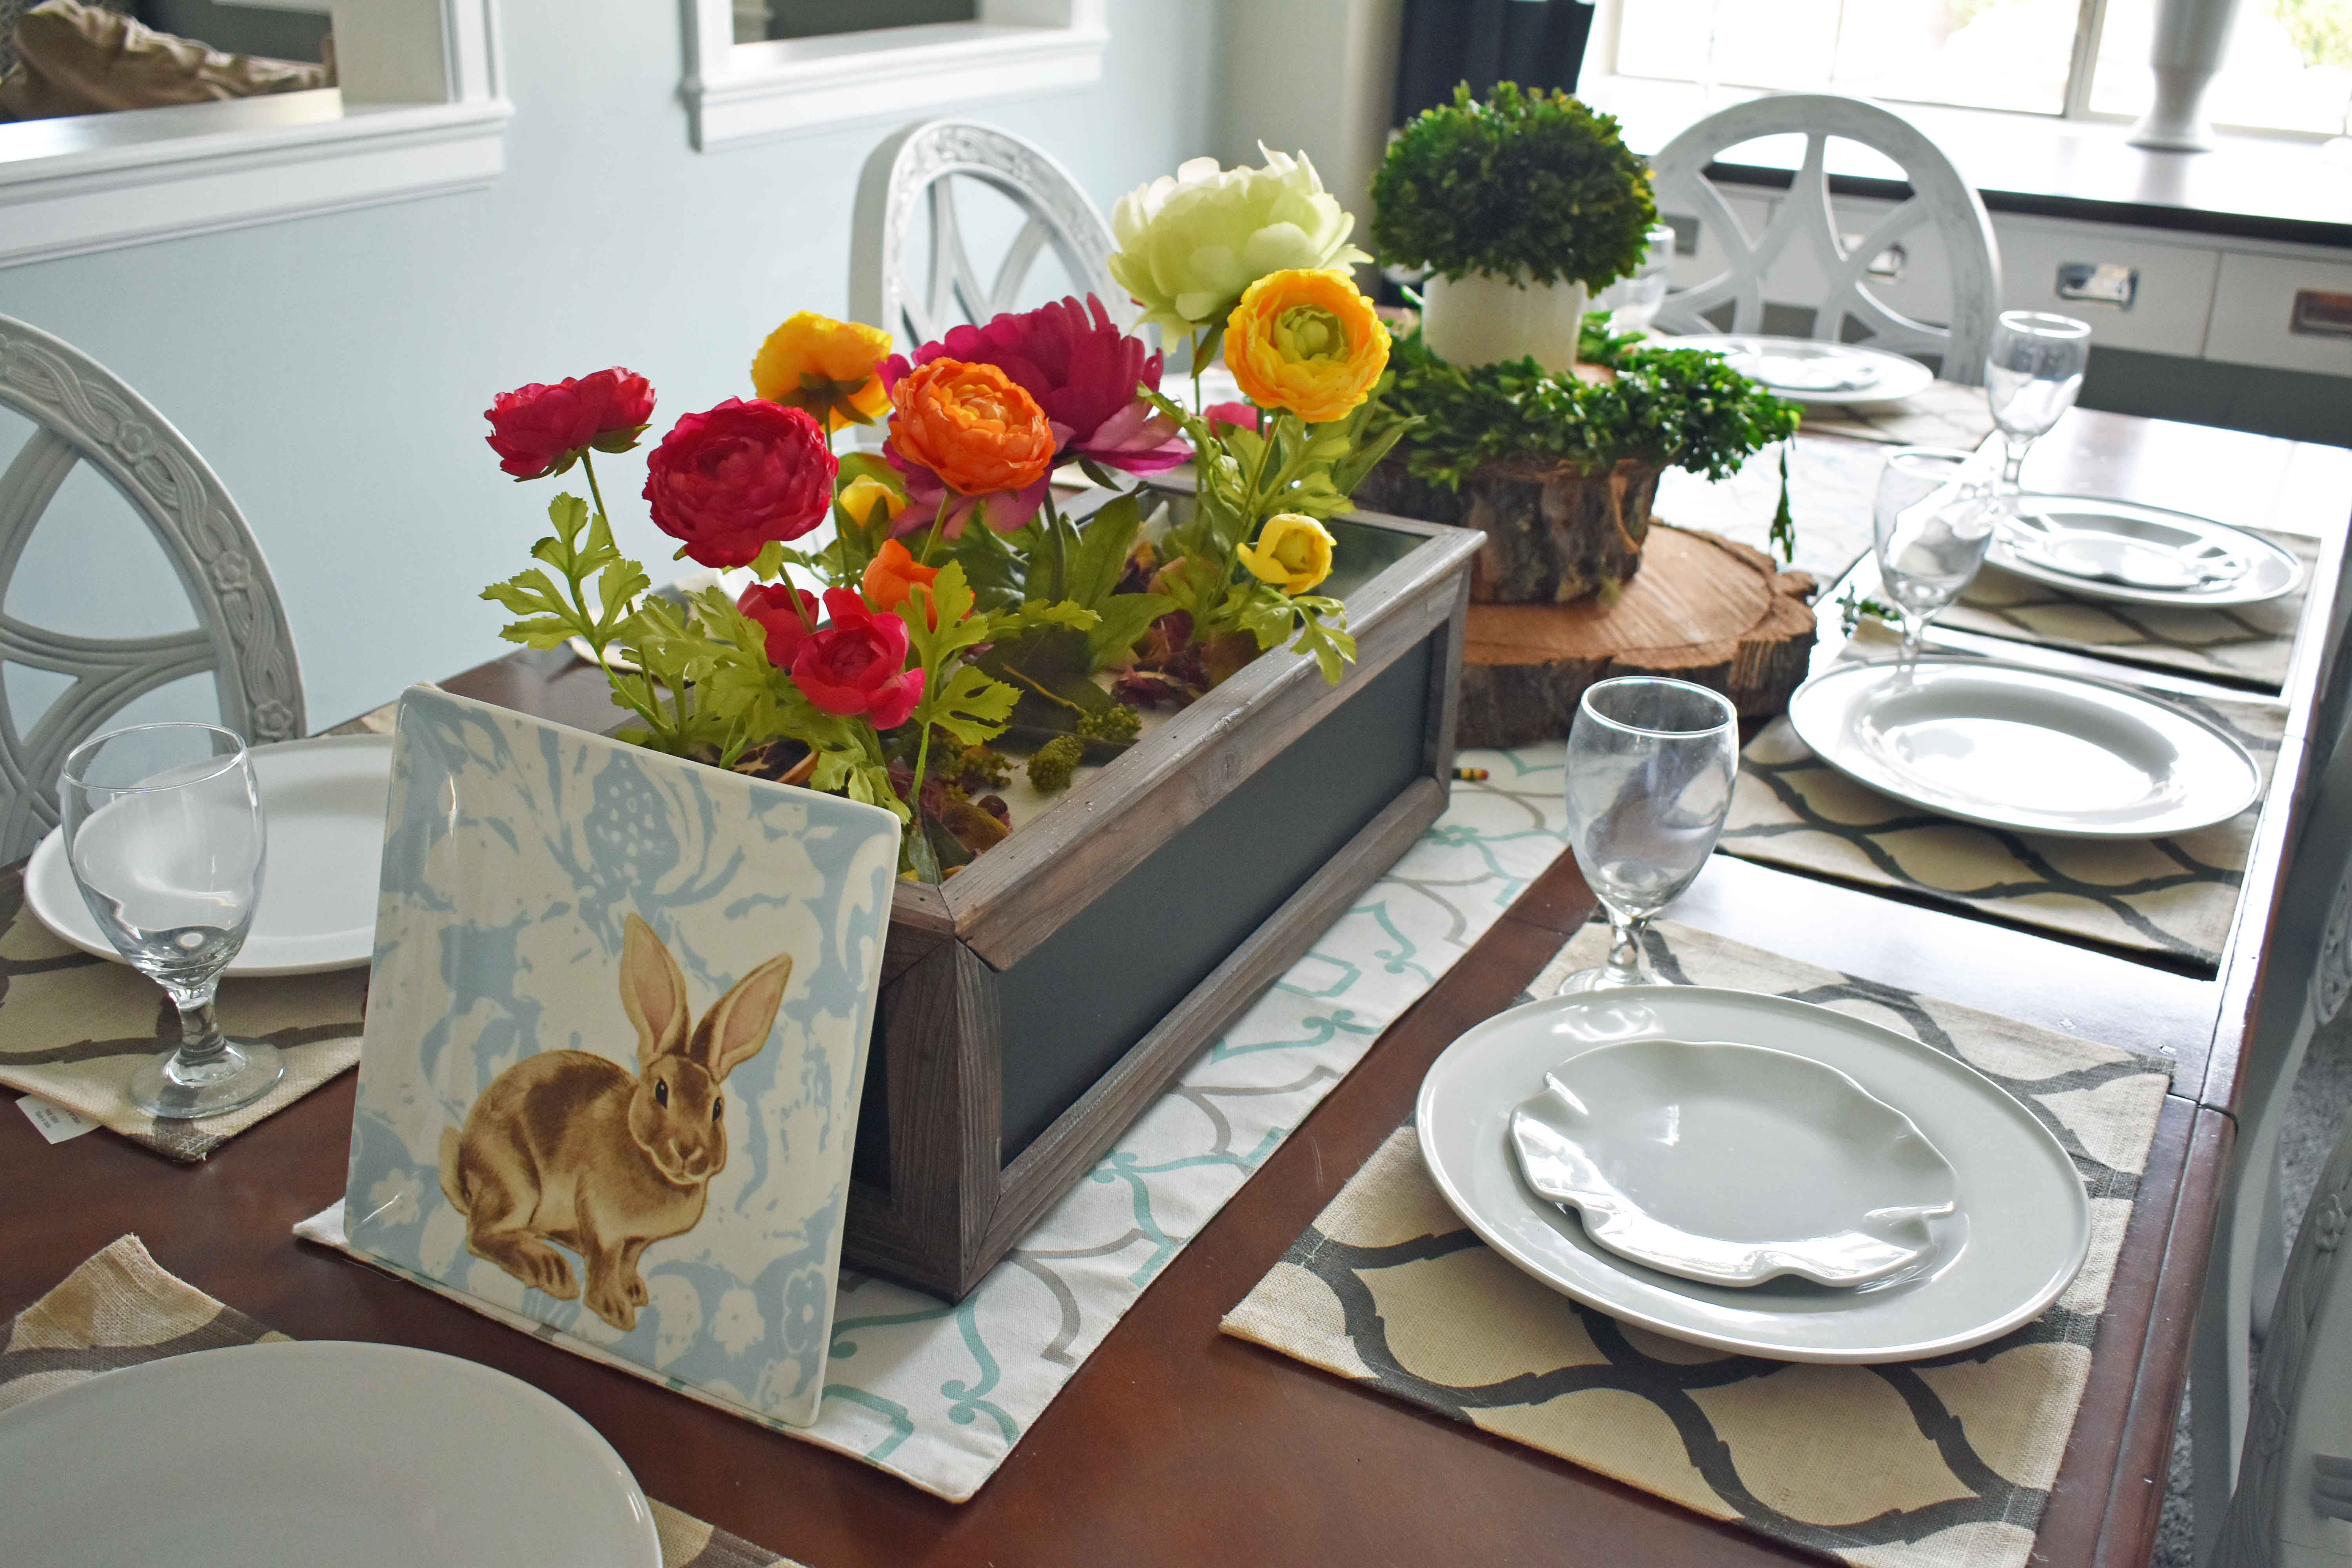 Spring Decoration Ideas. Gorgeous Spring and Easter tablescapes from Home Goods. www.modernhoney.com